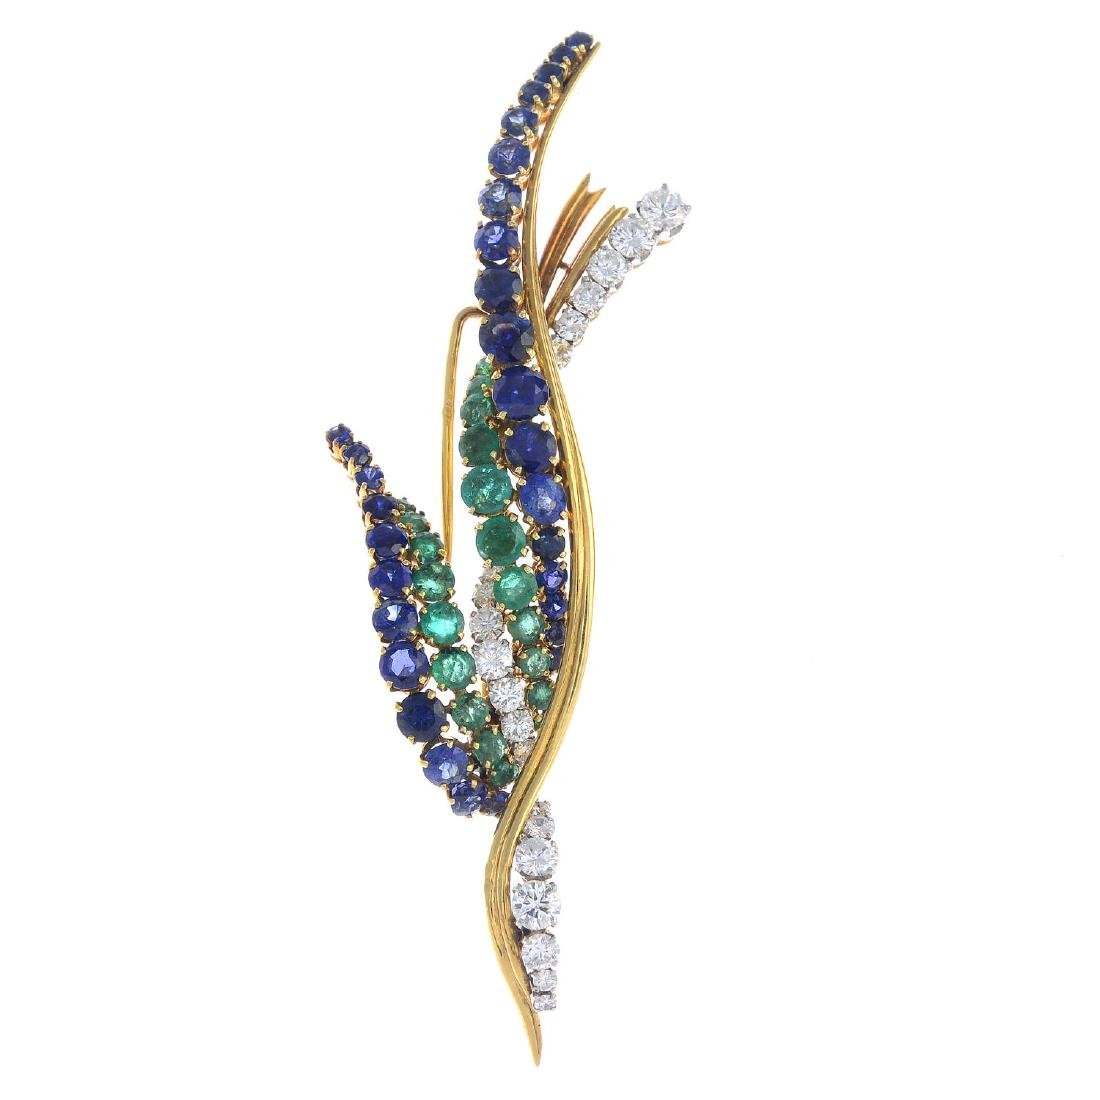 VAN CLEEF & ARPELS - a mid 20th century 18ct gold